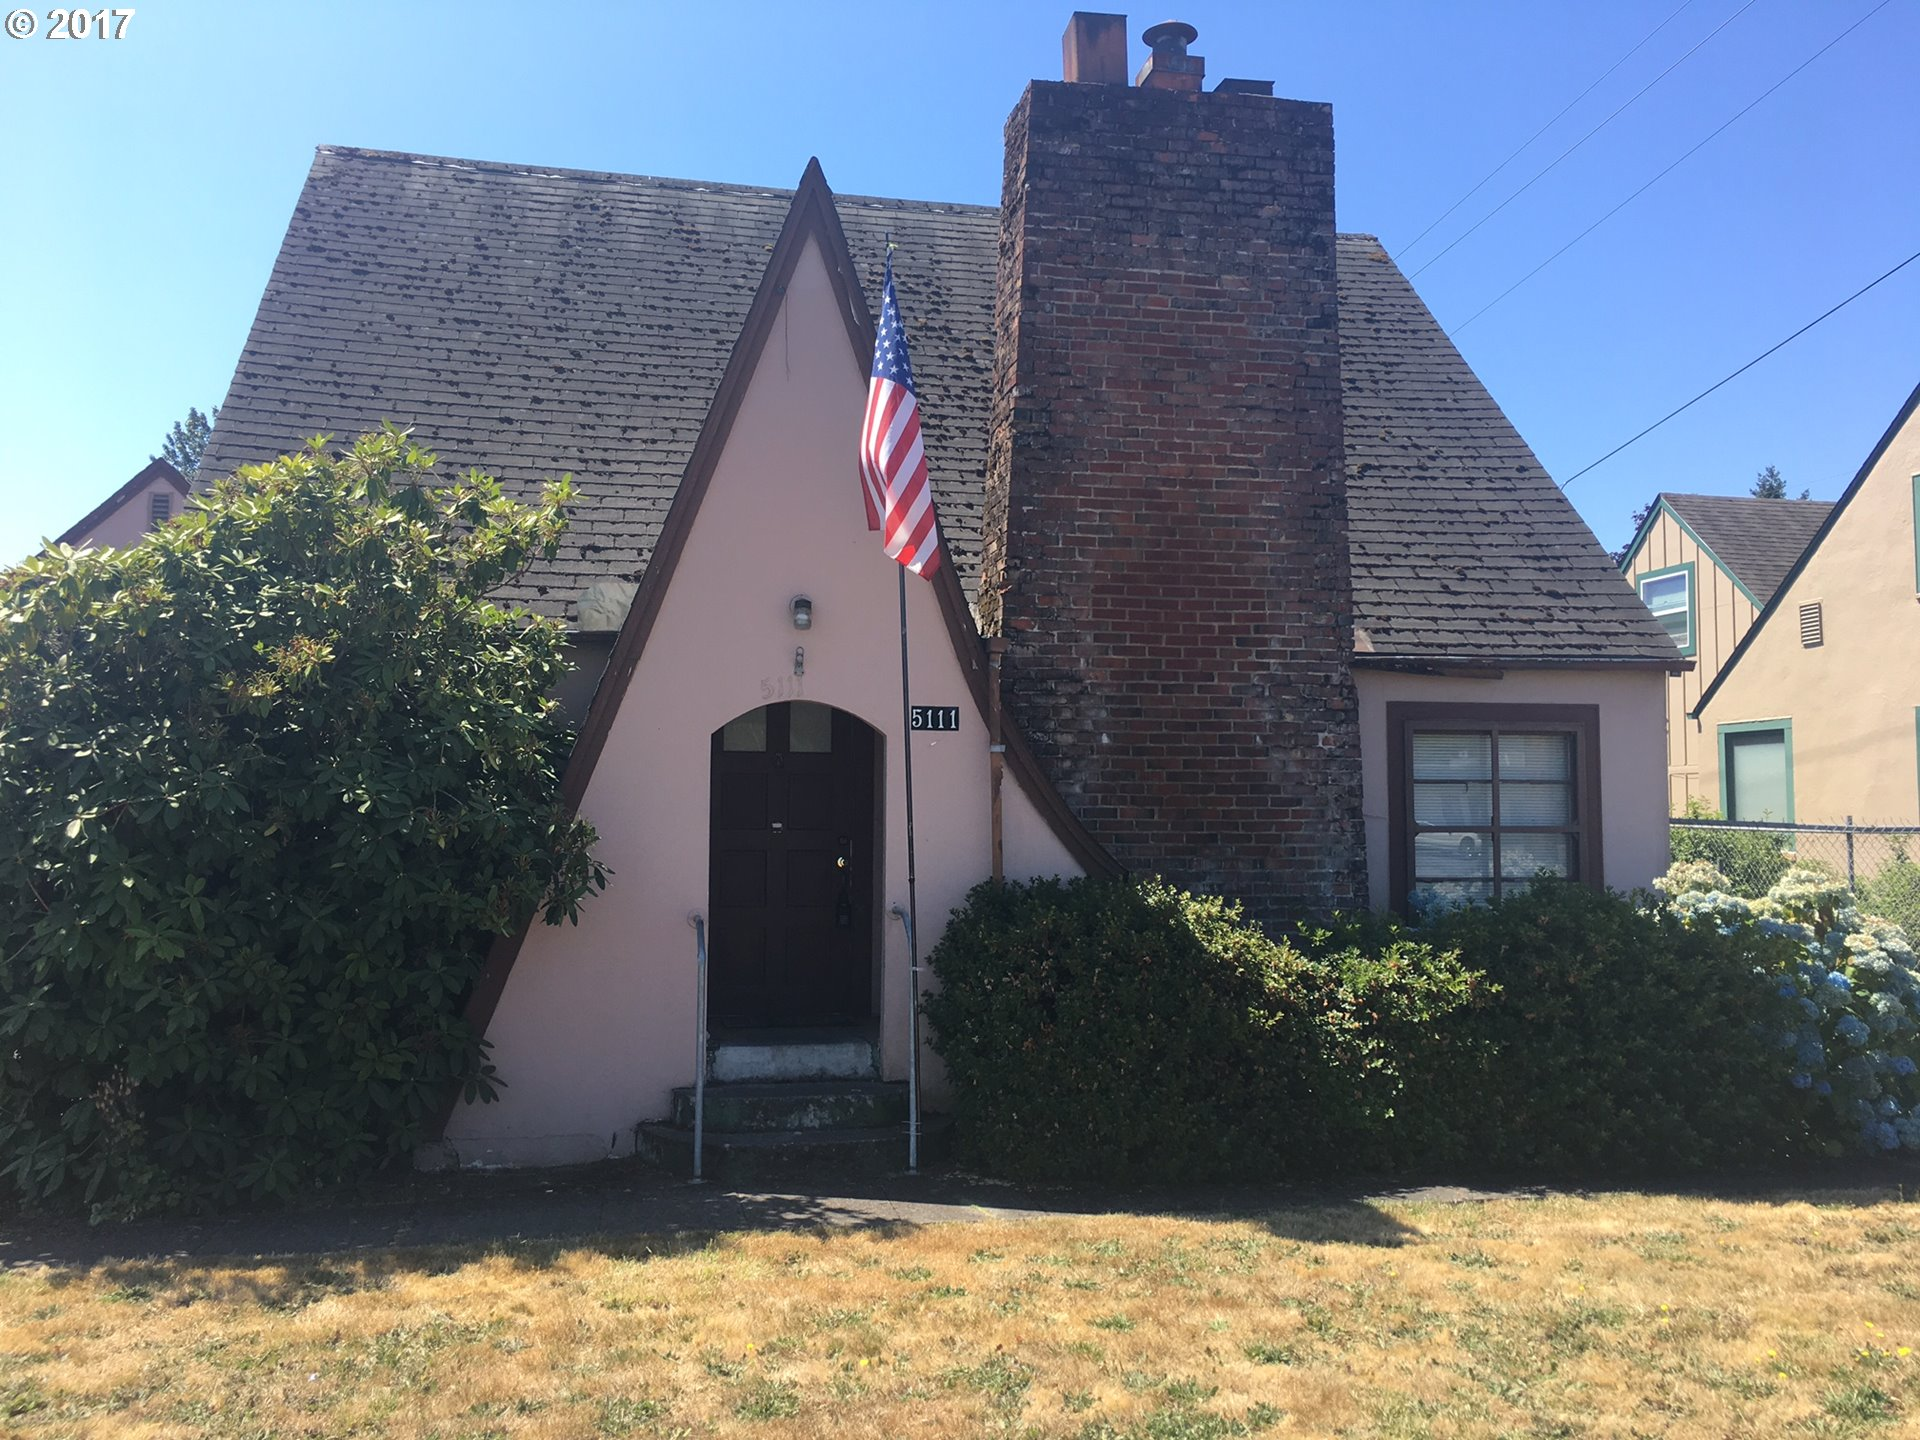 5111 MAIN ST, Springfield OR 97478